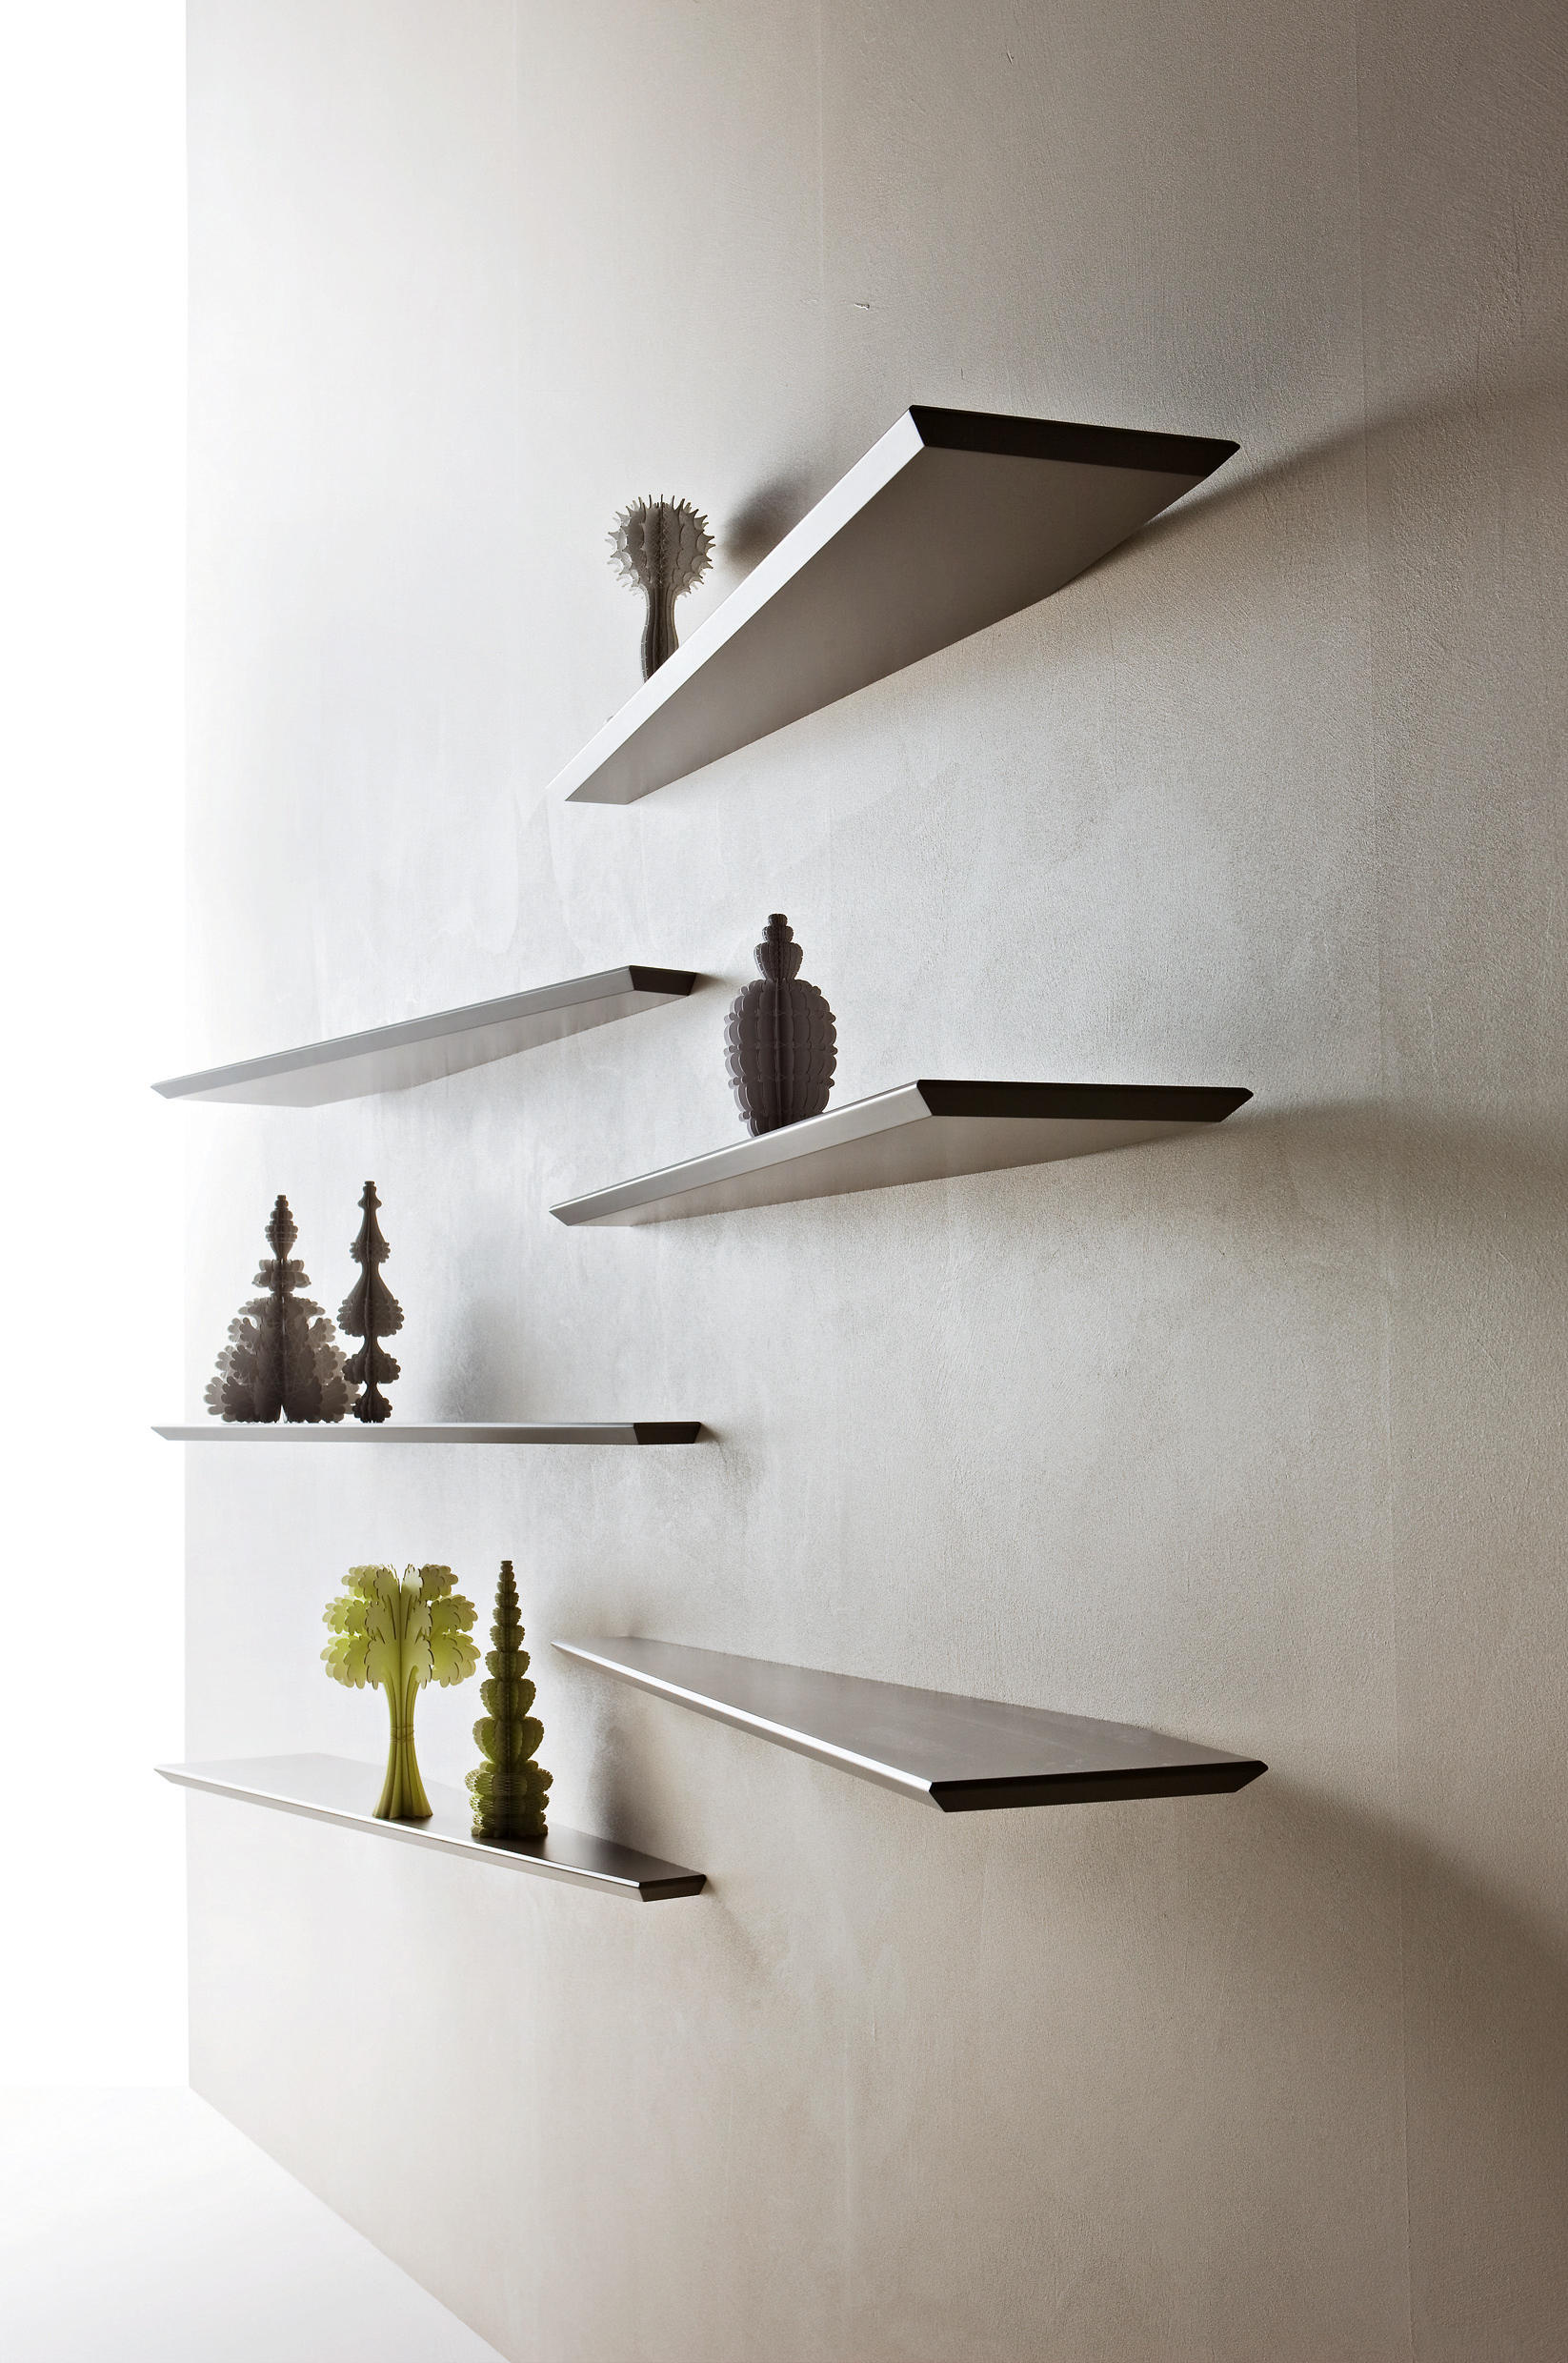 10 mensola wall shelves from molteni c architonic for Staffe per mensole